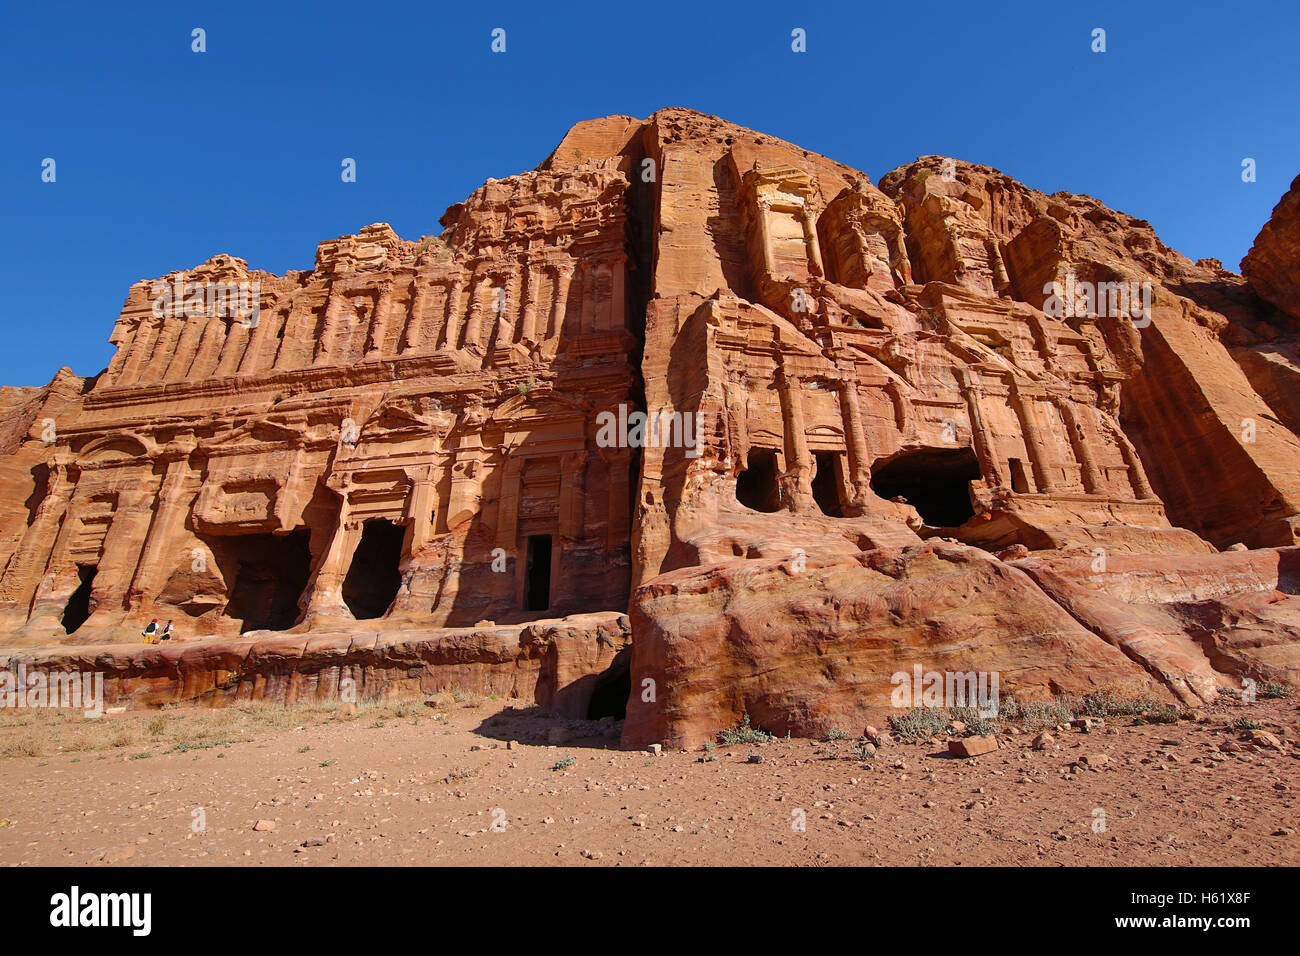 The Corinthian Tomb and the Palace Tomb of the Royal Tombs in the rock city of Petra, Jordan - Stock Image